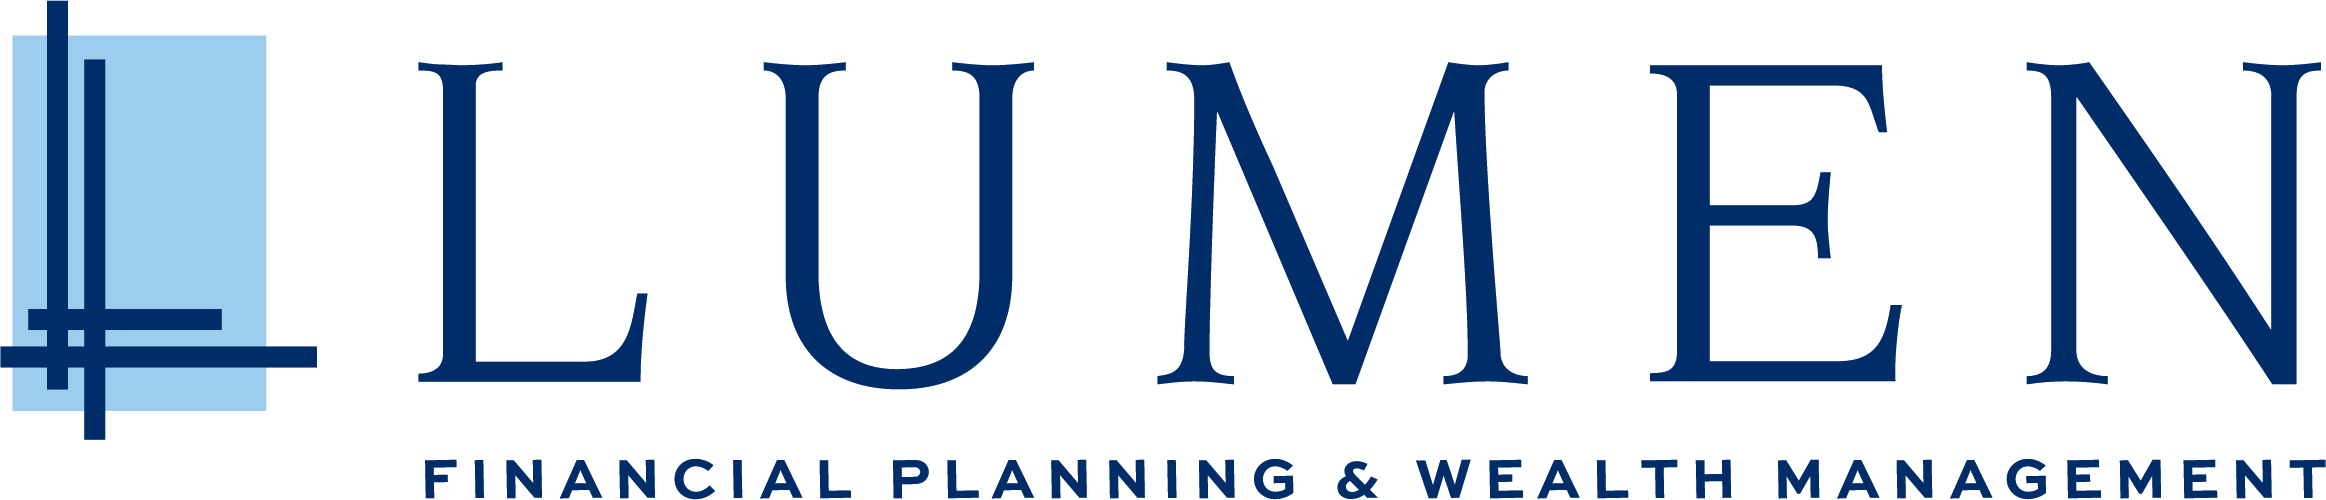 LUMEN Financial Advisor and Wealth Management